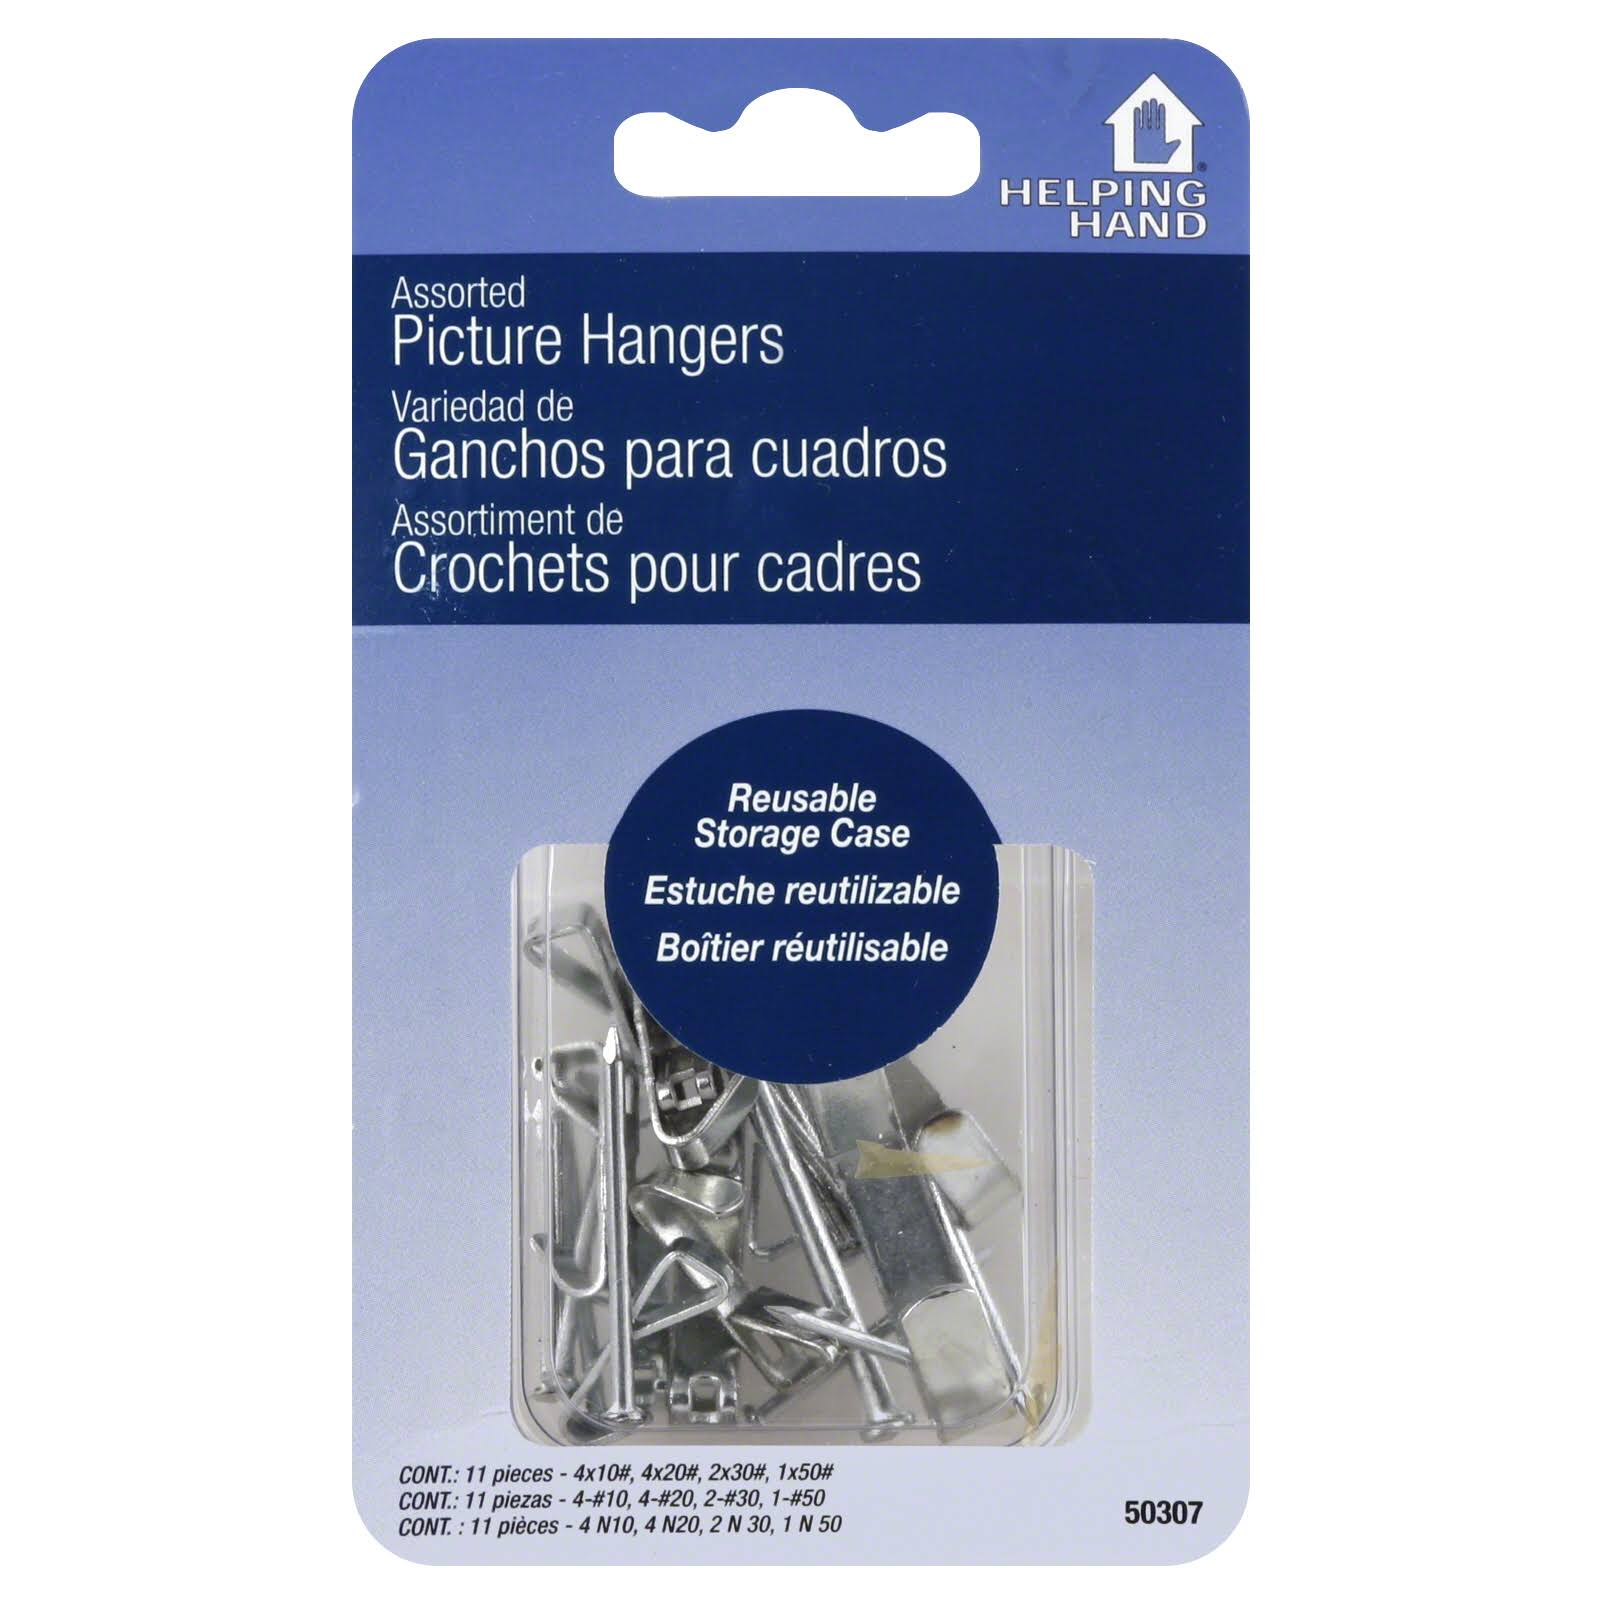 Helping Hand Assorted Picture Hangers - Silver, 11ct